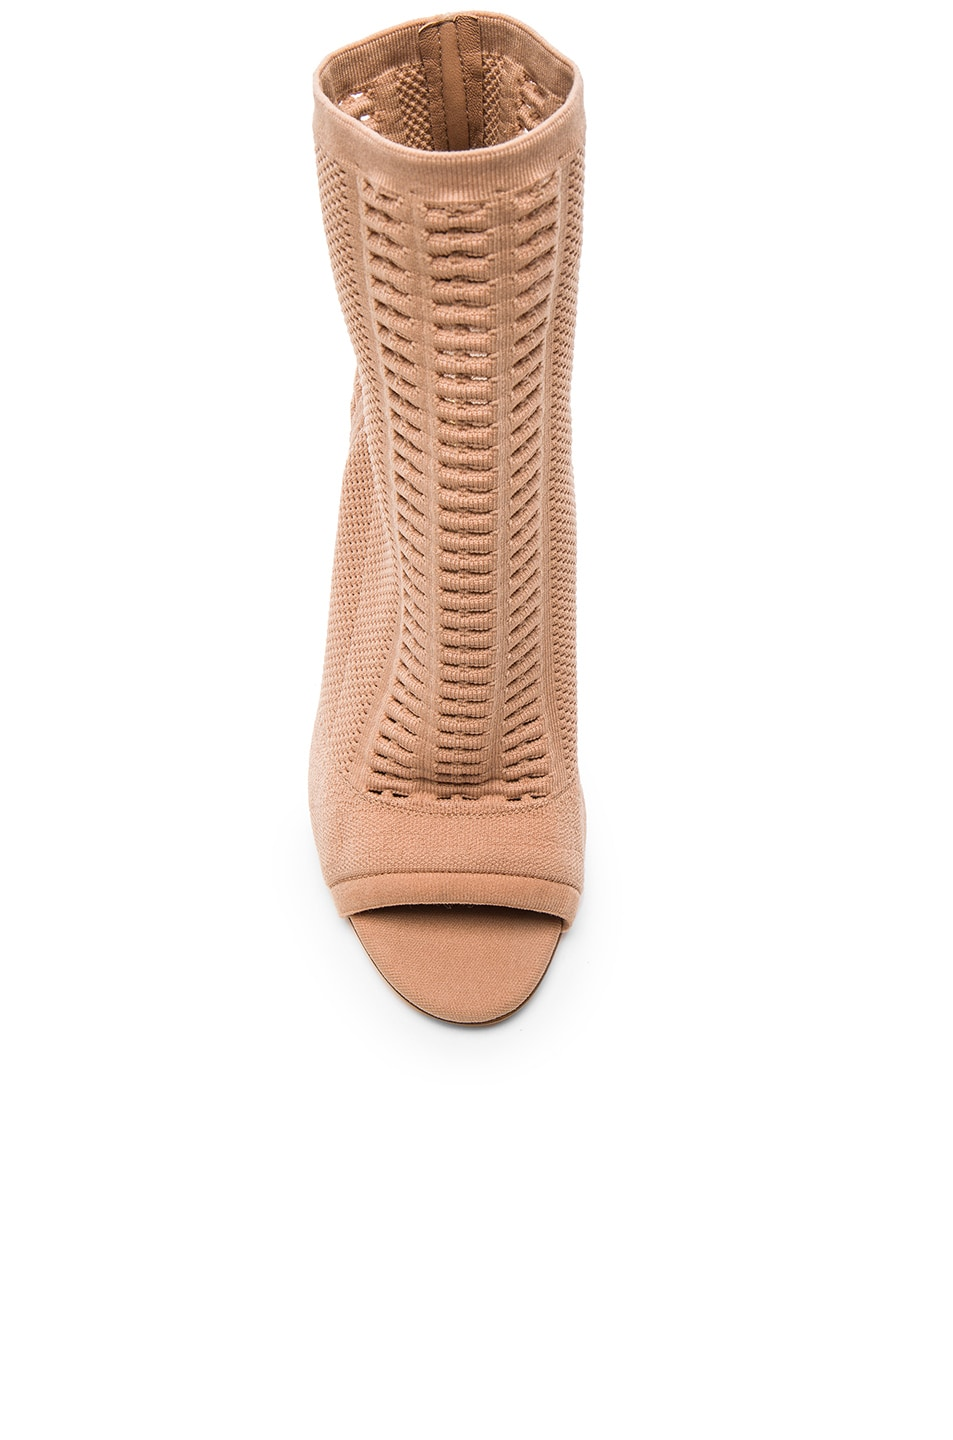 Image 4 of Gianvito Rossi Knit Vires Booties in Praline